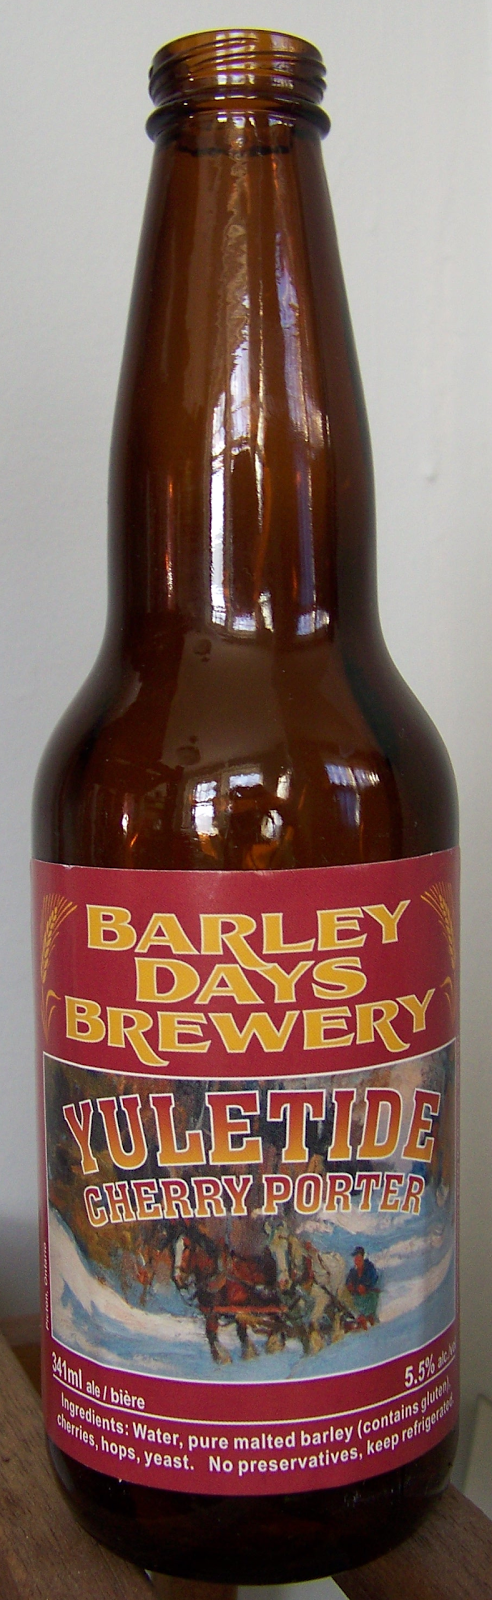 Beer maven yuletide cherry porter barley days canada for Porter canada